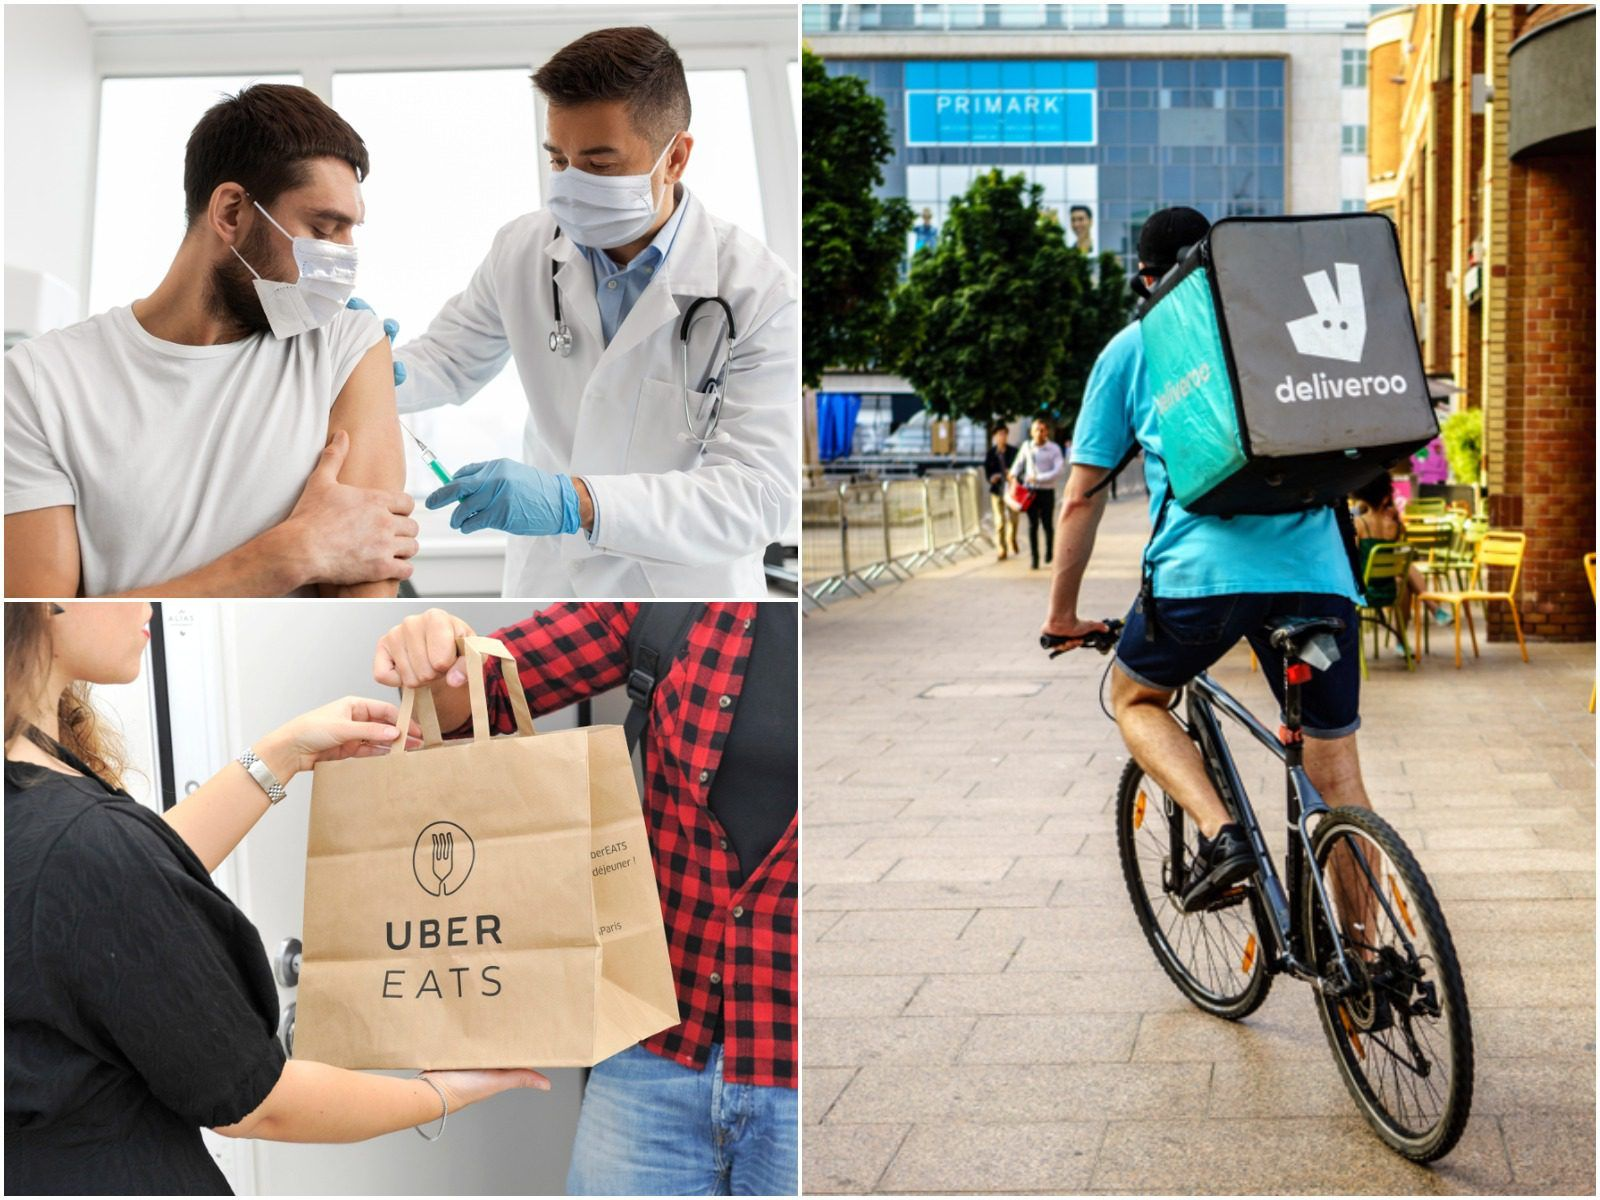 Food delivery and taxi firms to offer incentives to boost Covid vaccine uptake